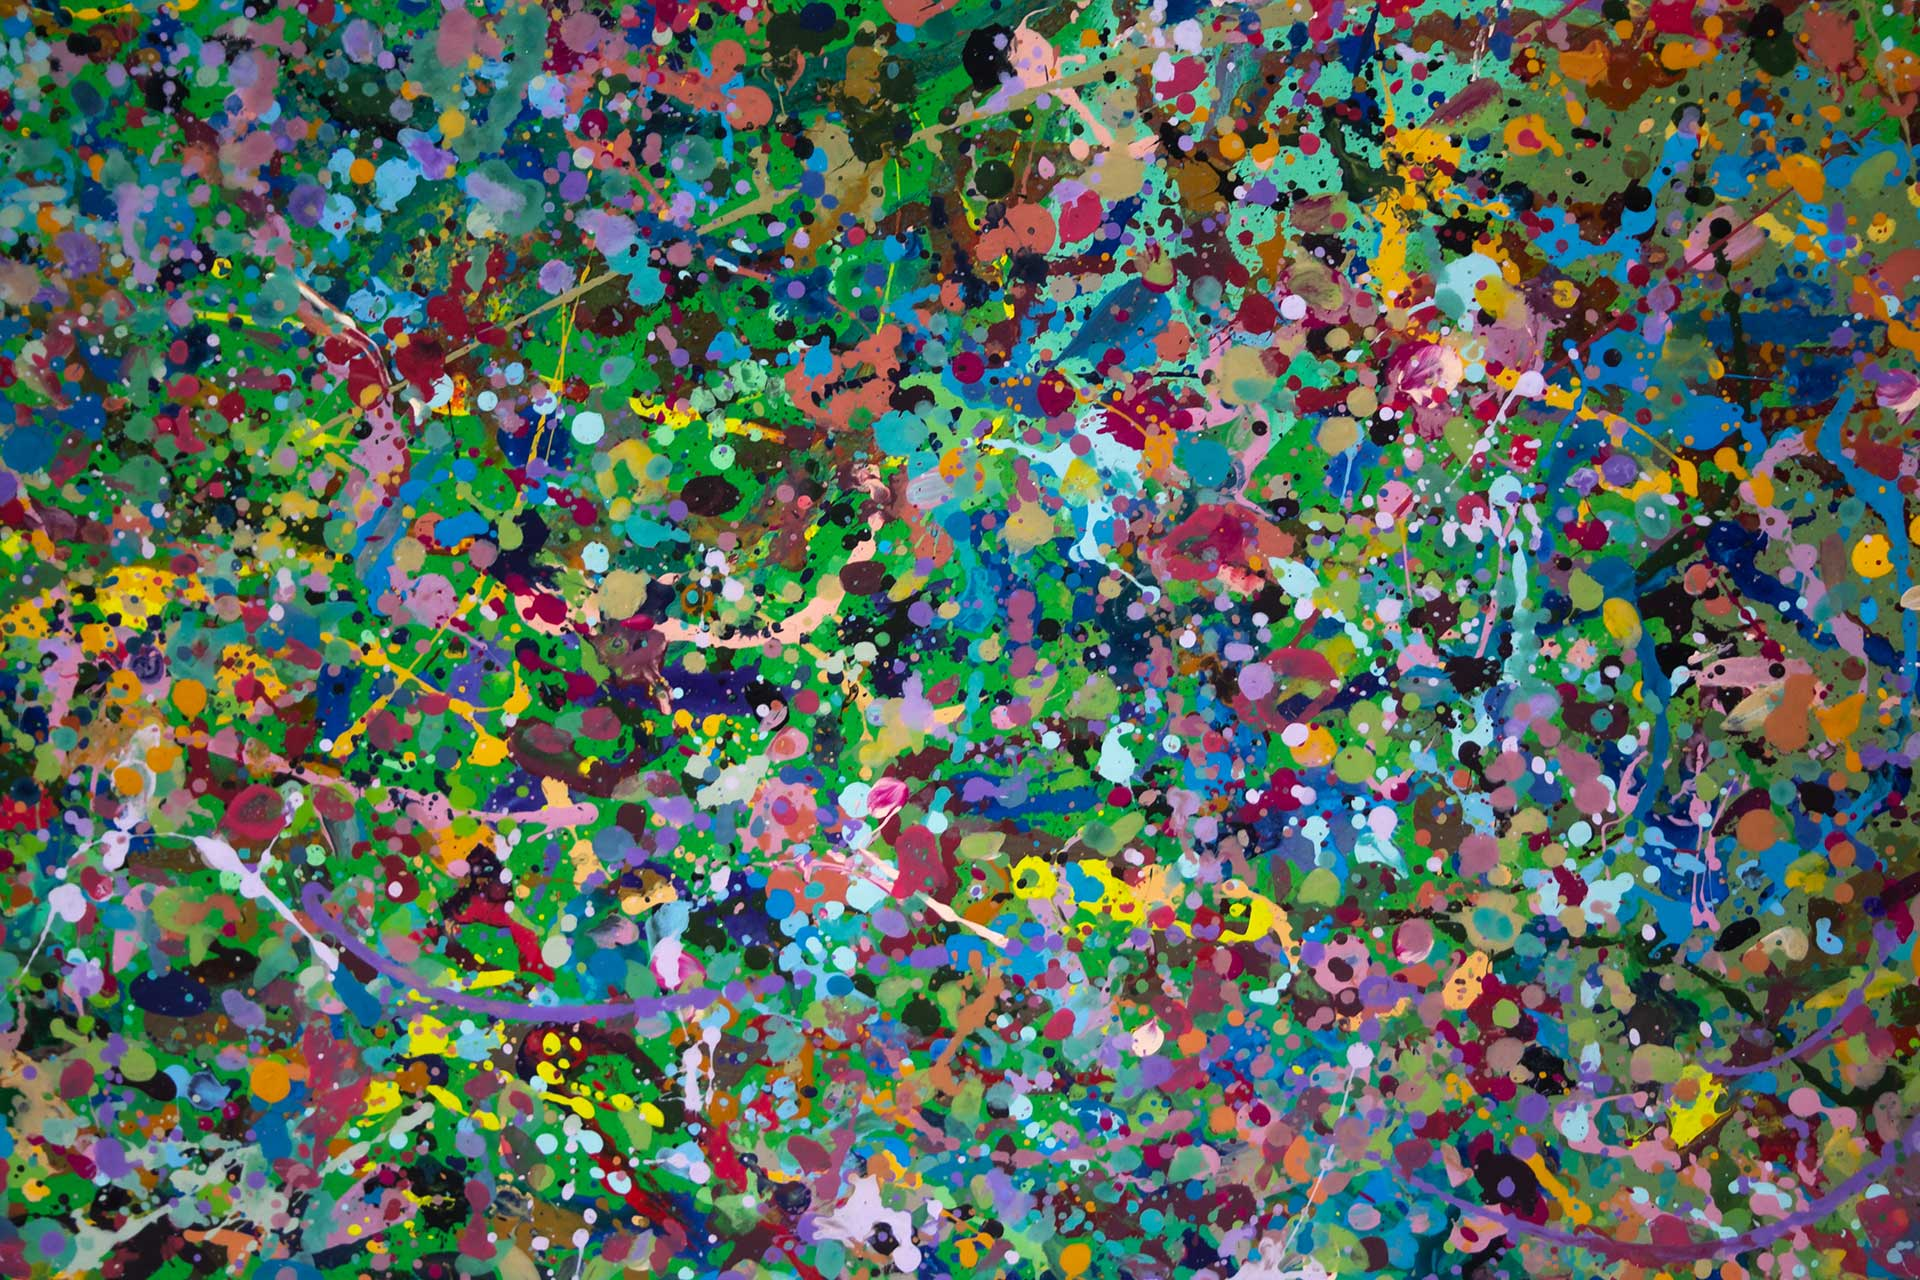 Abstract expressionism painting - Field of flowers - Yarra Glen #2 - Detail 5